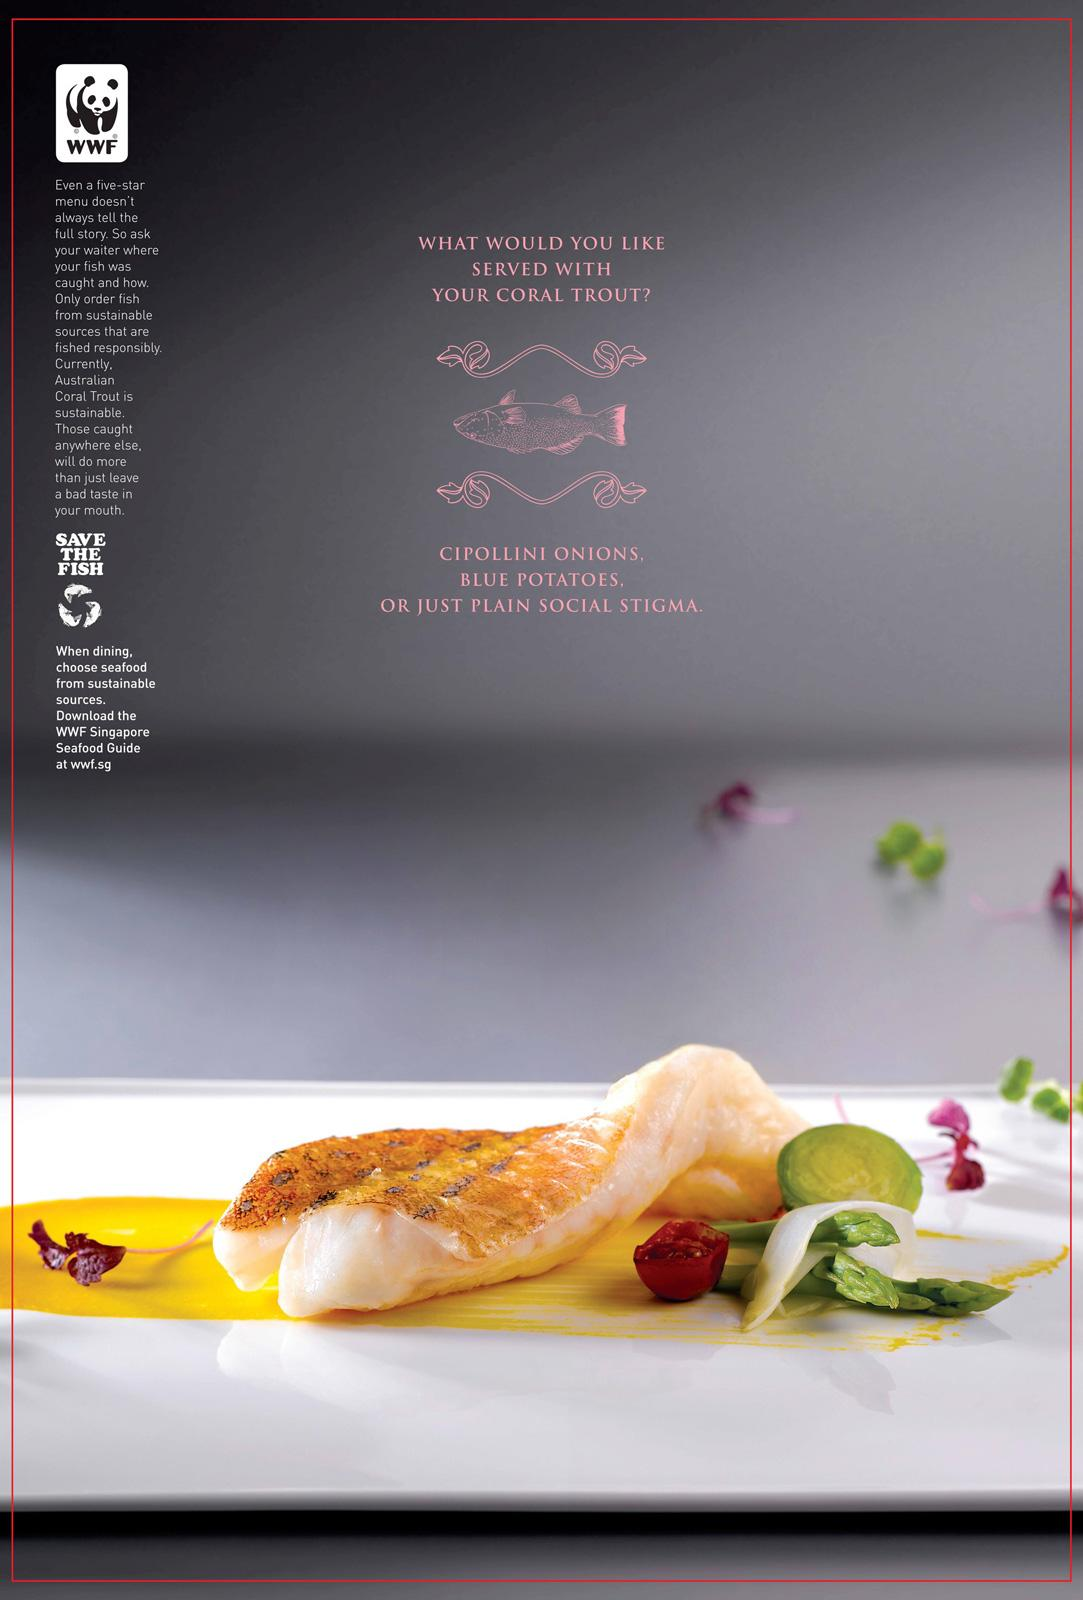 WWF:  Enter the World of Sustainable Seafood, Coral trout